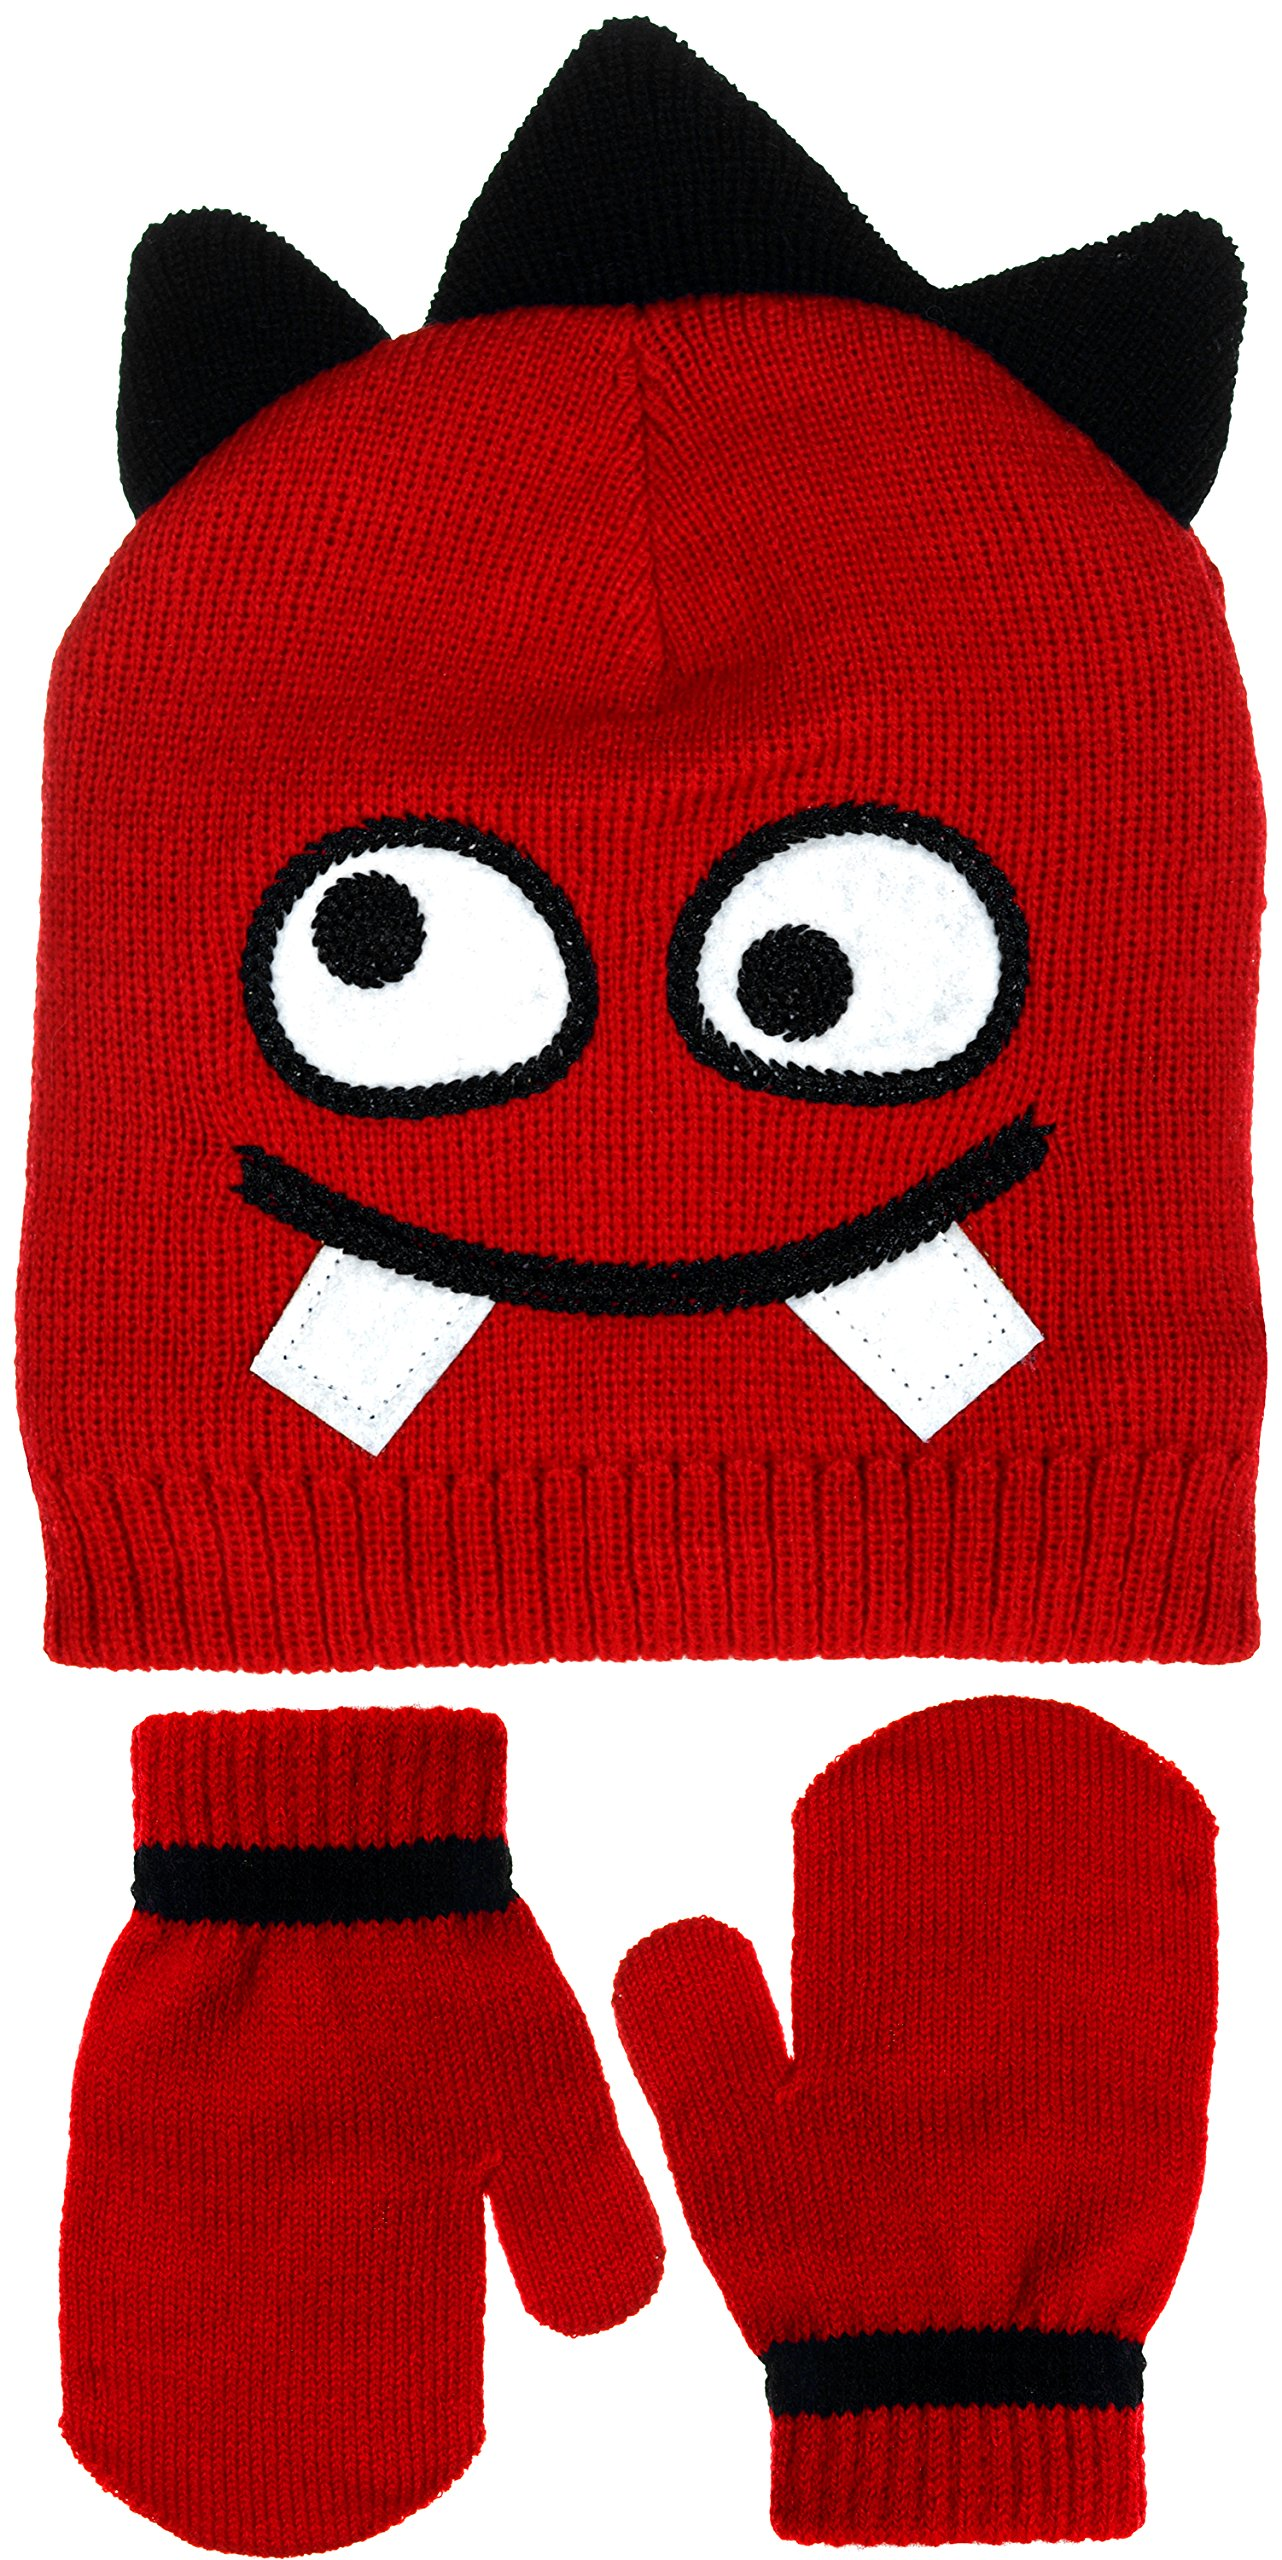 Little Boys Goofy Monster Face Knit Beanie & Mittens Set in Blue or Red (Red)